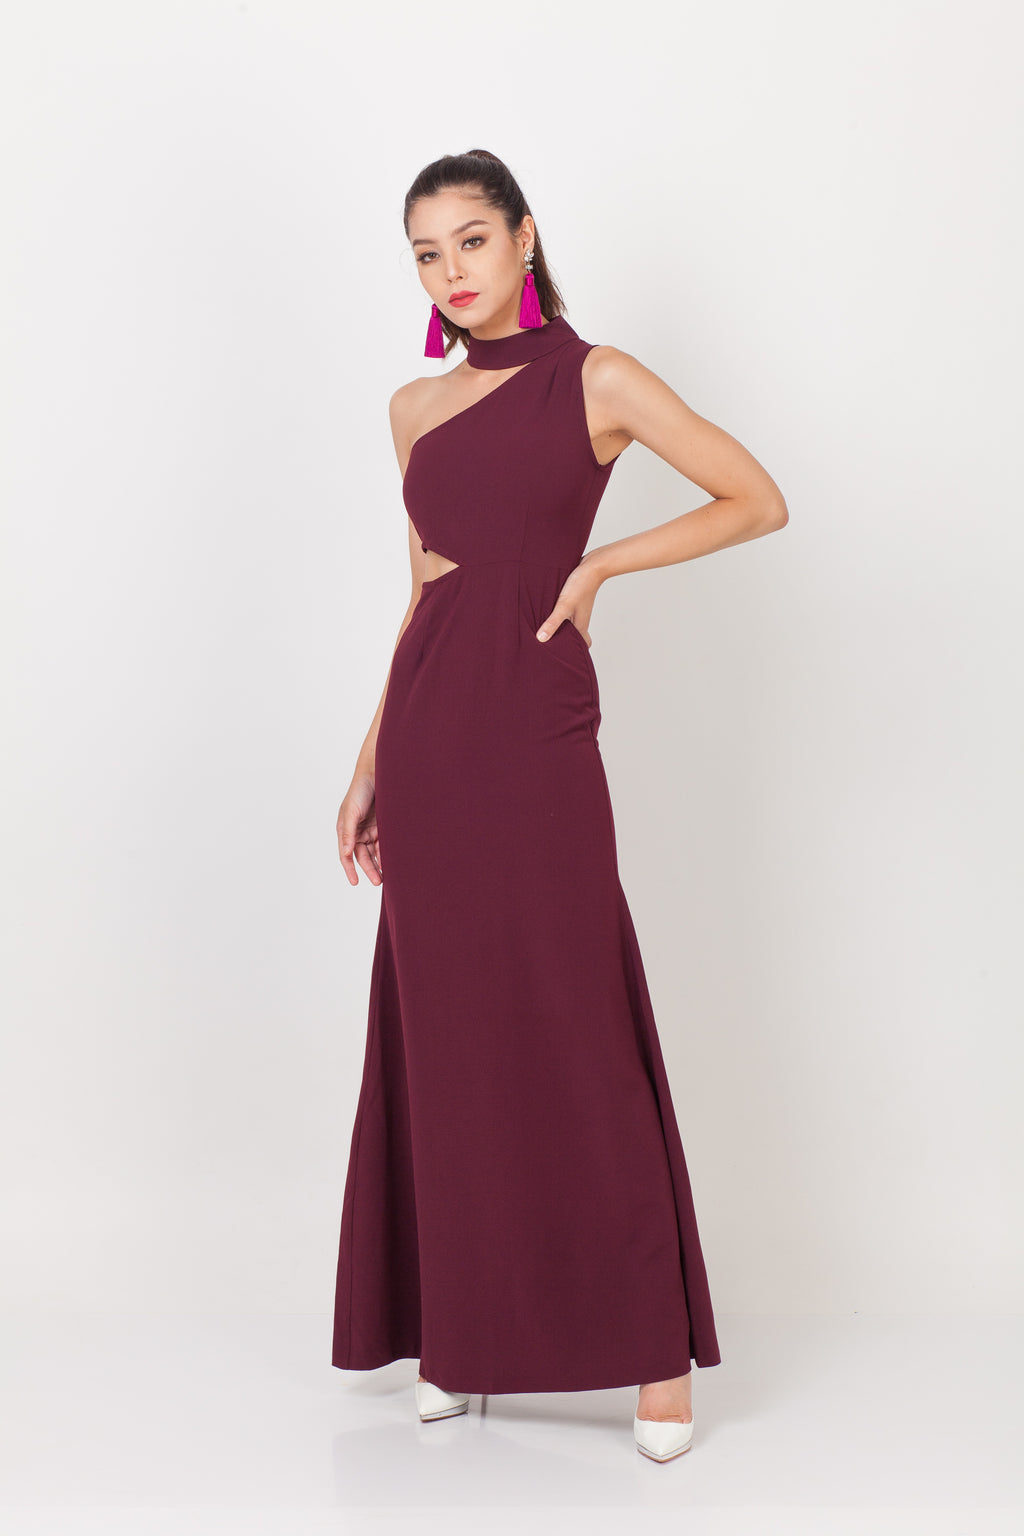 Qipology Cut Out Qipao Gown